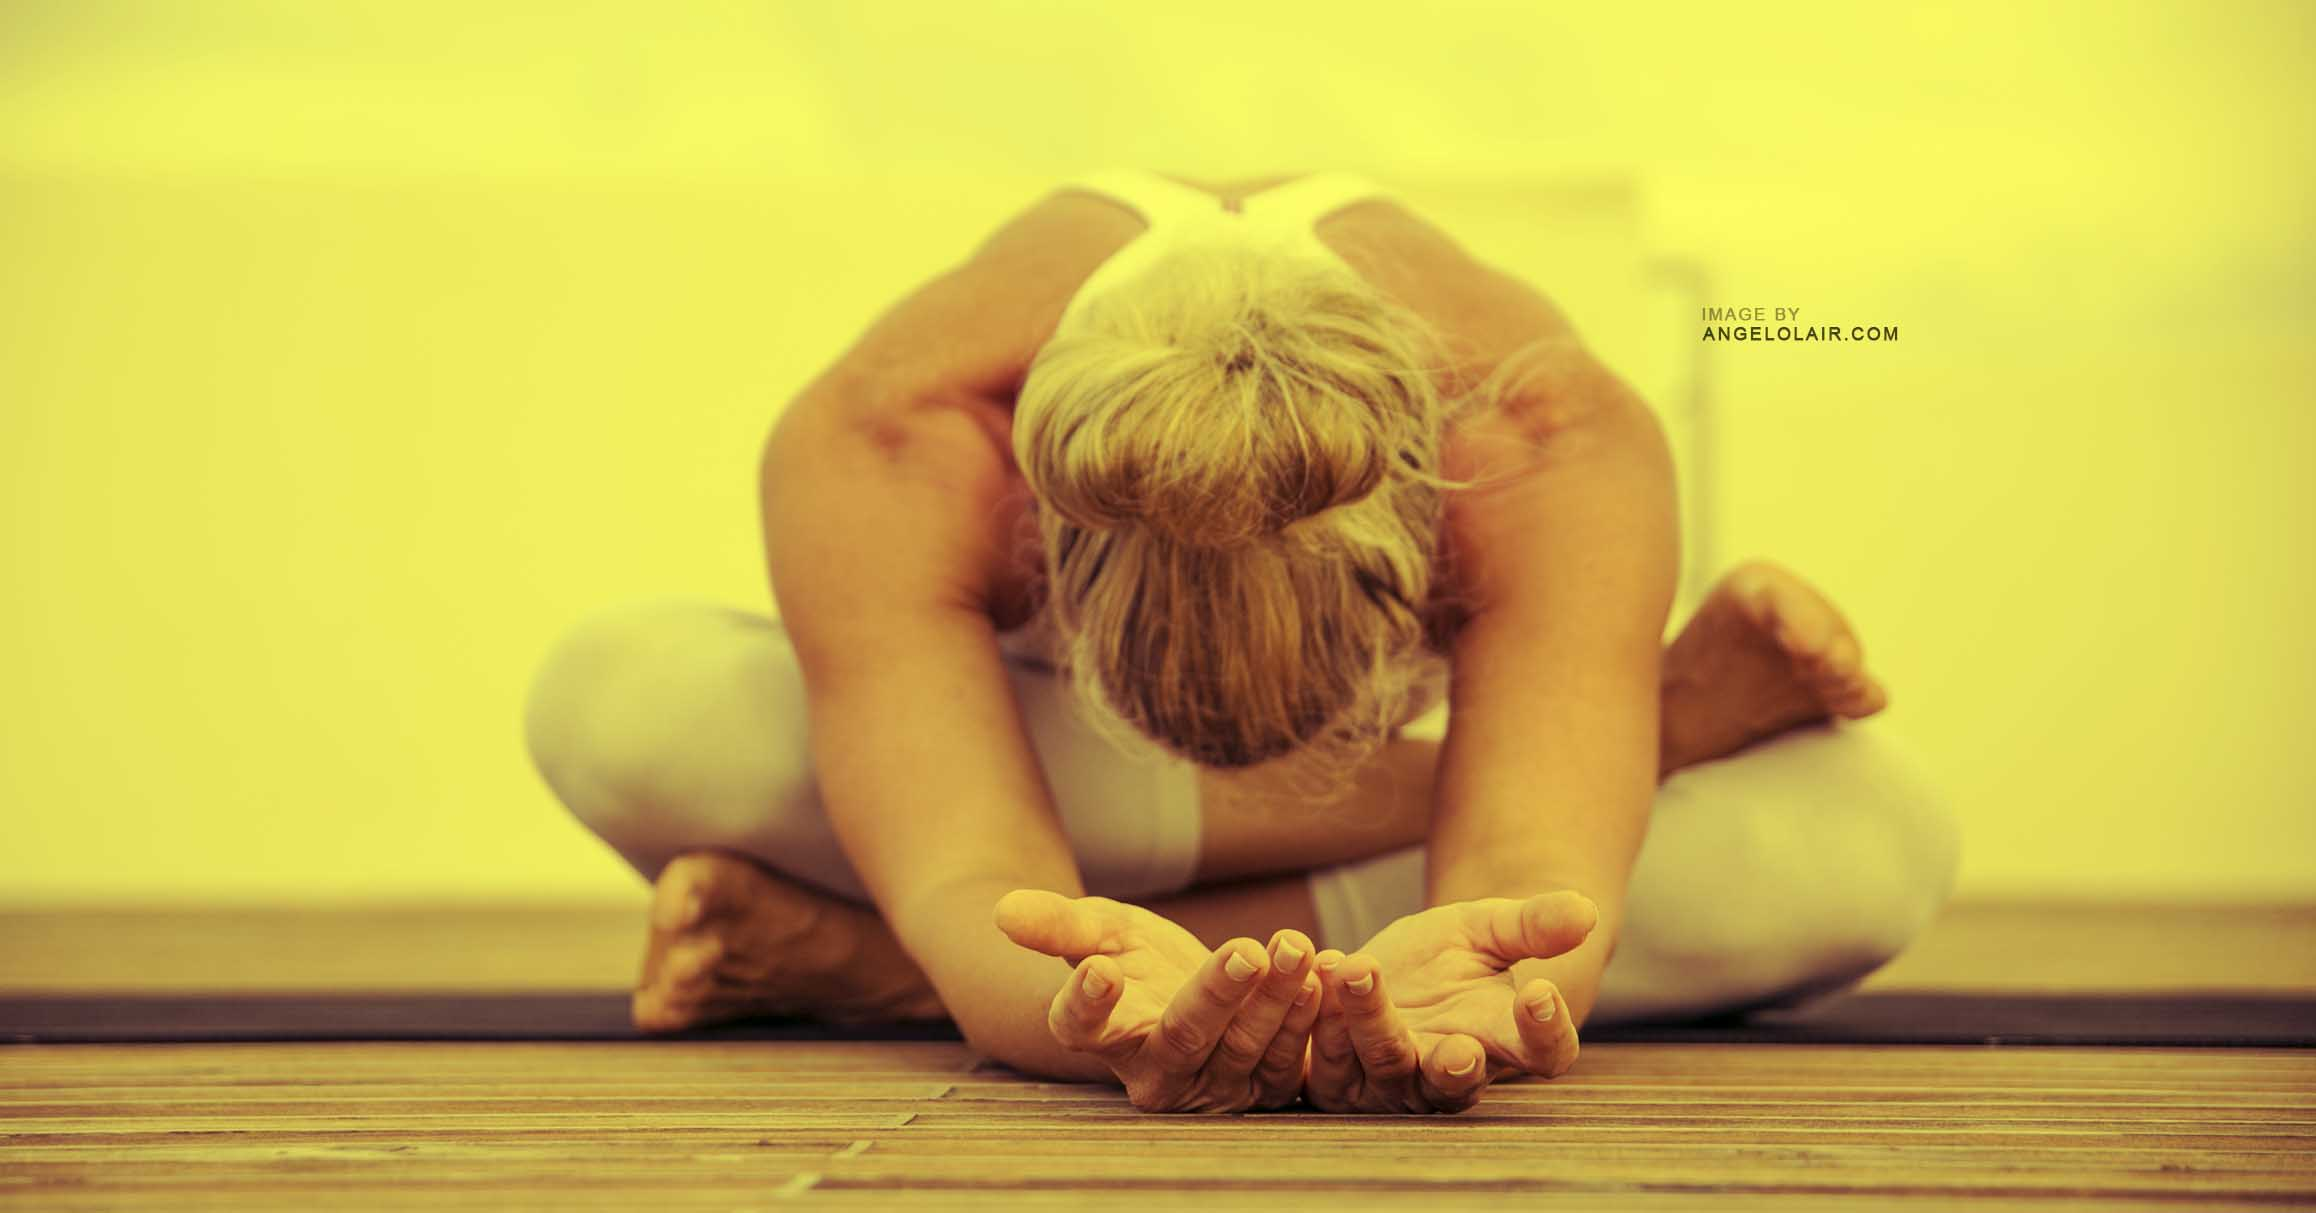 Yin Yoga Baden bei Wien - Discover the essential differences of working with Yoga to propel your own evolution